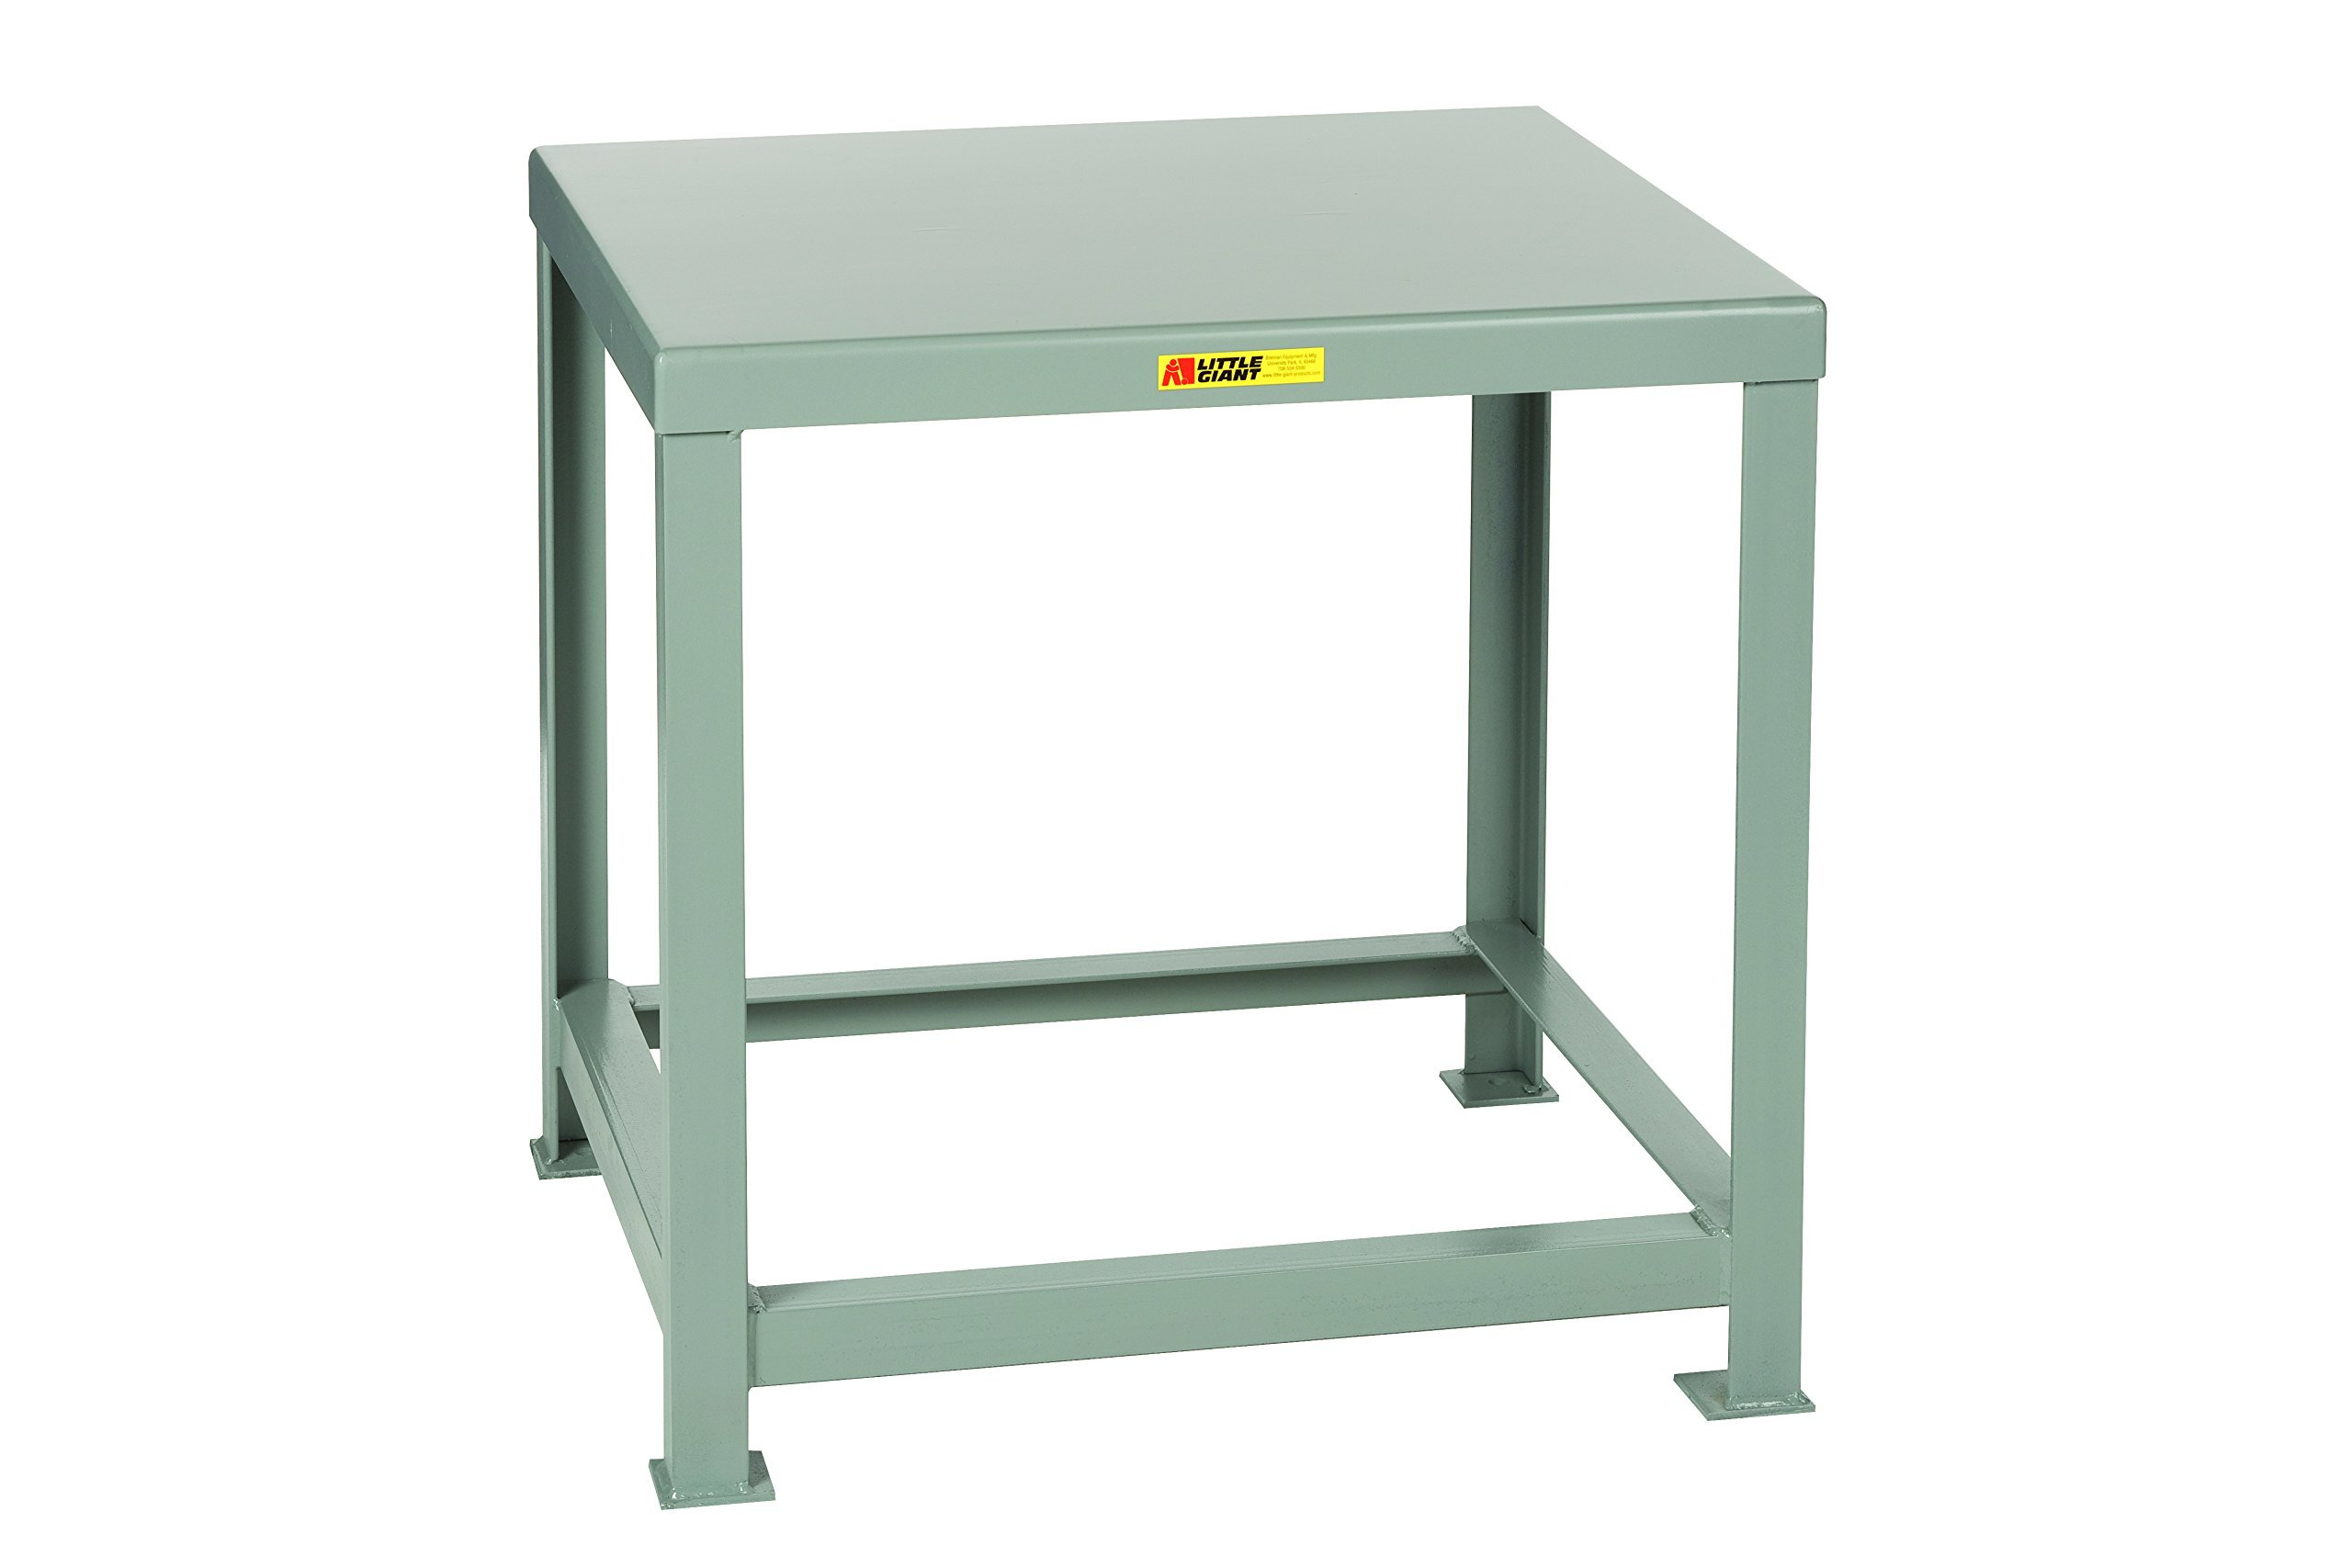 Little Giant MTH1-3048-36 Welded Steel Machine Table, 10,000 lb. Load Capacity, 30'' x 48'' x 36'', Gray